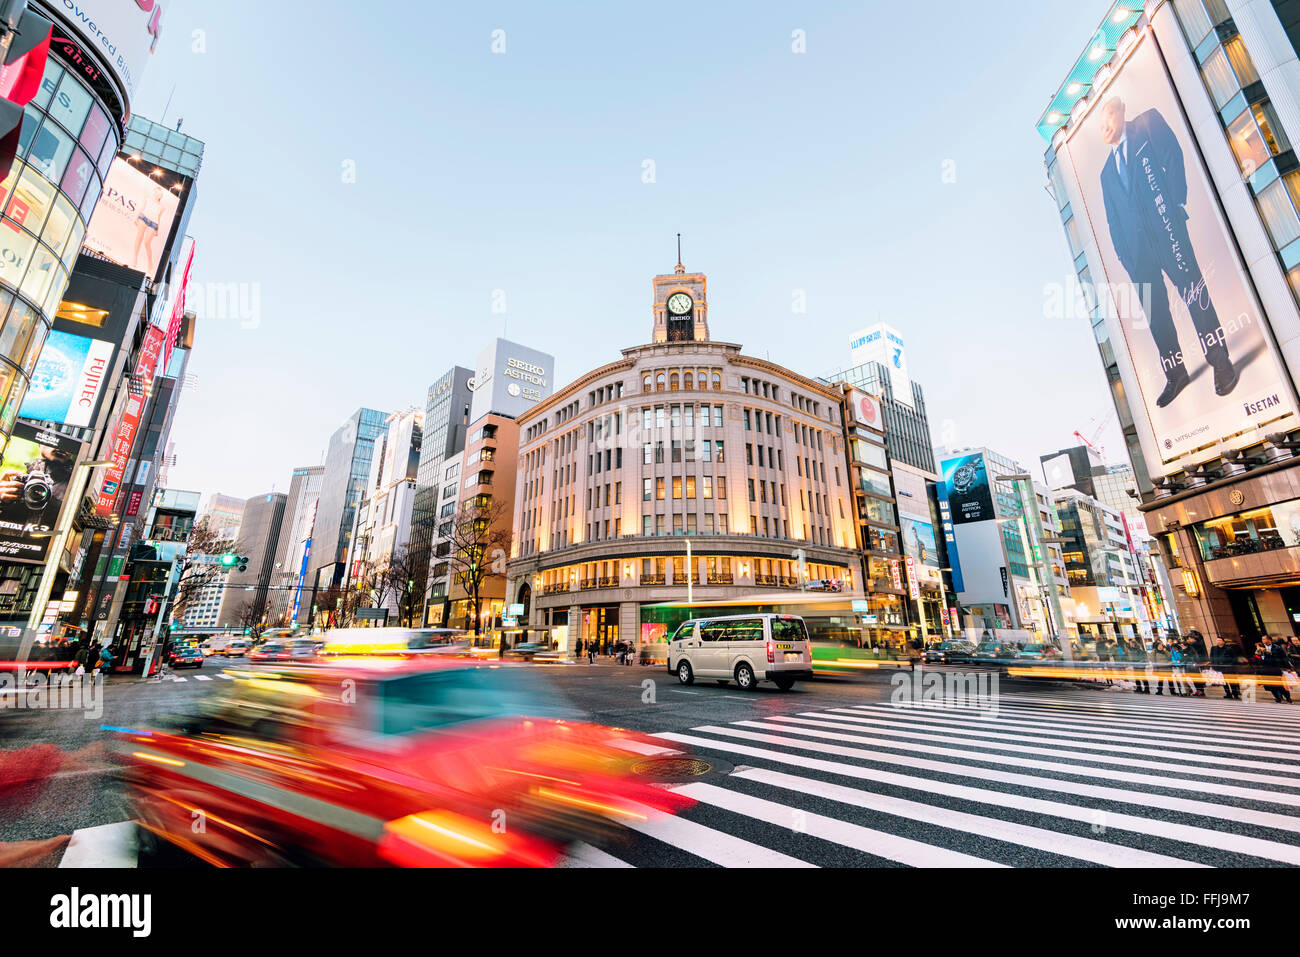 Tokyo, Japan - January 18, 2015:  Ginza shopping district at rush hour in Tokyo, with the iconic Ginza Wako building - Stock Image